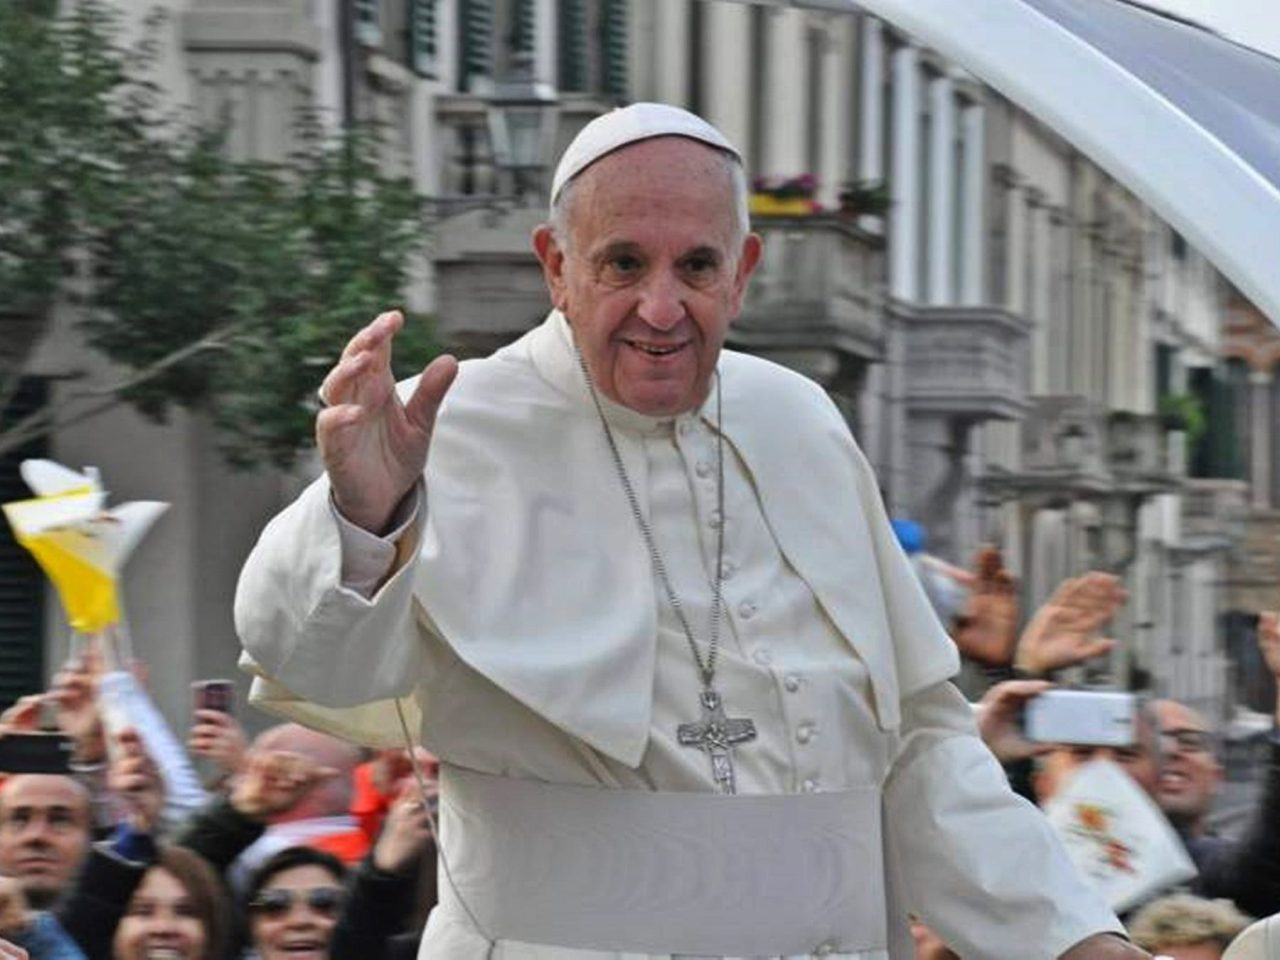 Pope Francis: 'We Like the Magi Should Look Up, So We Can See The Star'